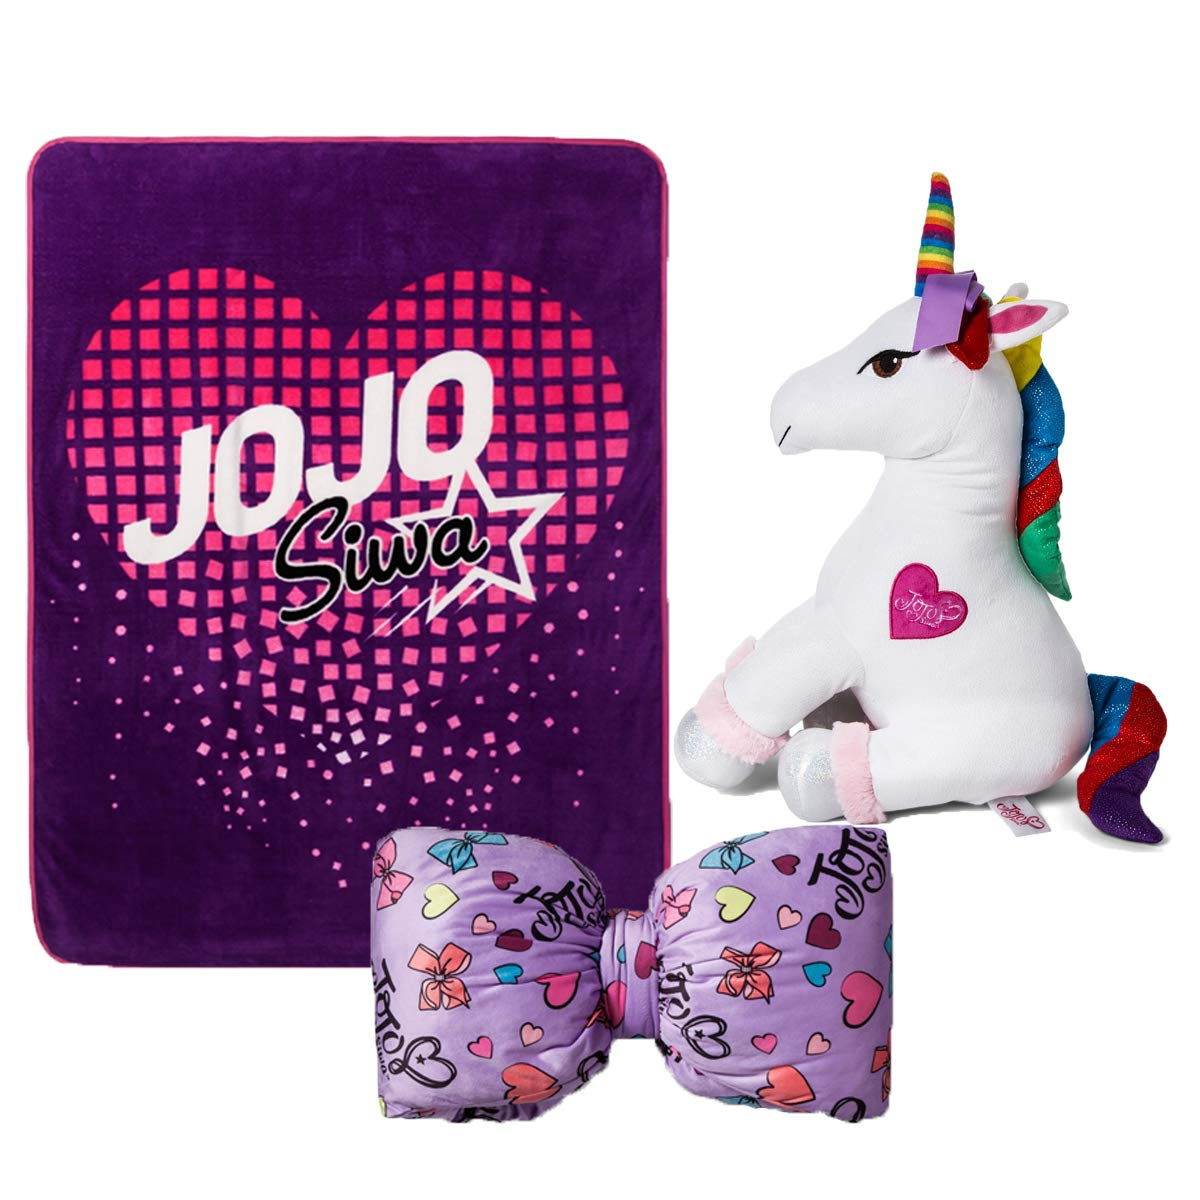 PricelessTreasures JoJo Siwa Bed Collections, Unicorn and Ribbon Plush Throw Pillow with Purple Blanket, Colorful Bedding Set for Girls, Christmas and Birthday Gift Set for Little Girls and Kids by PricelessTreasures